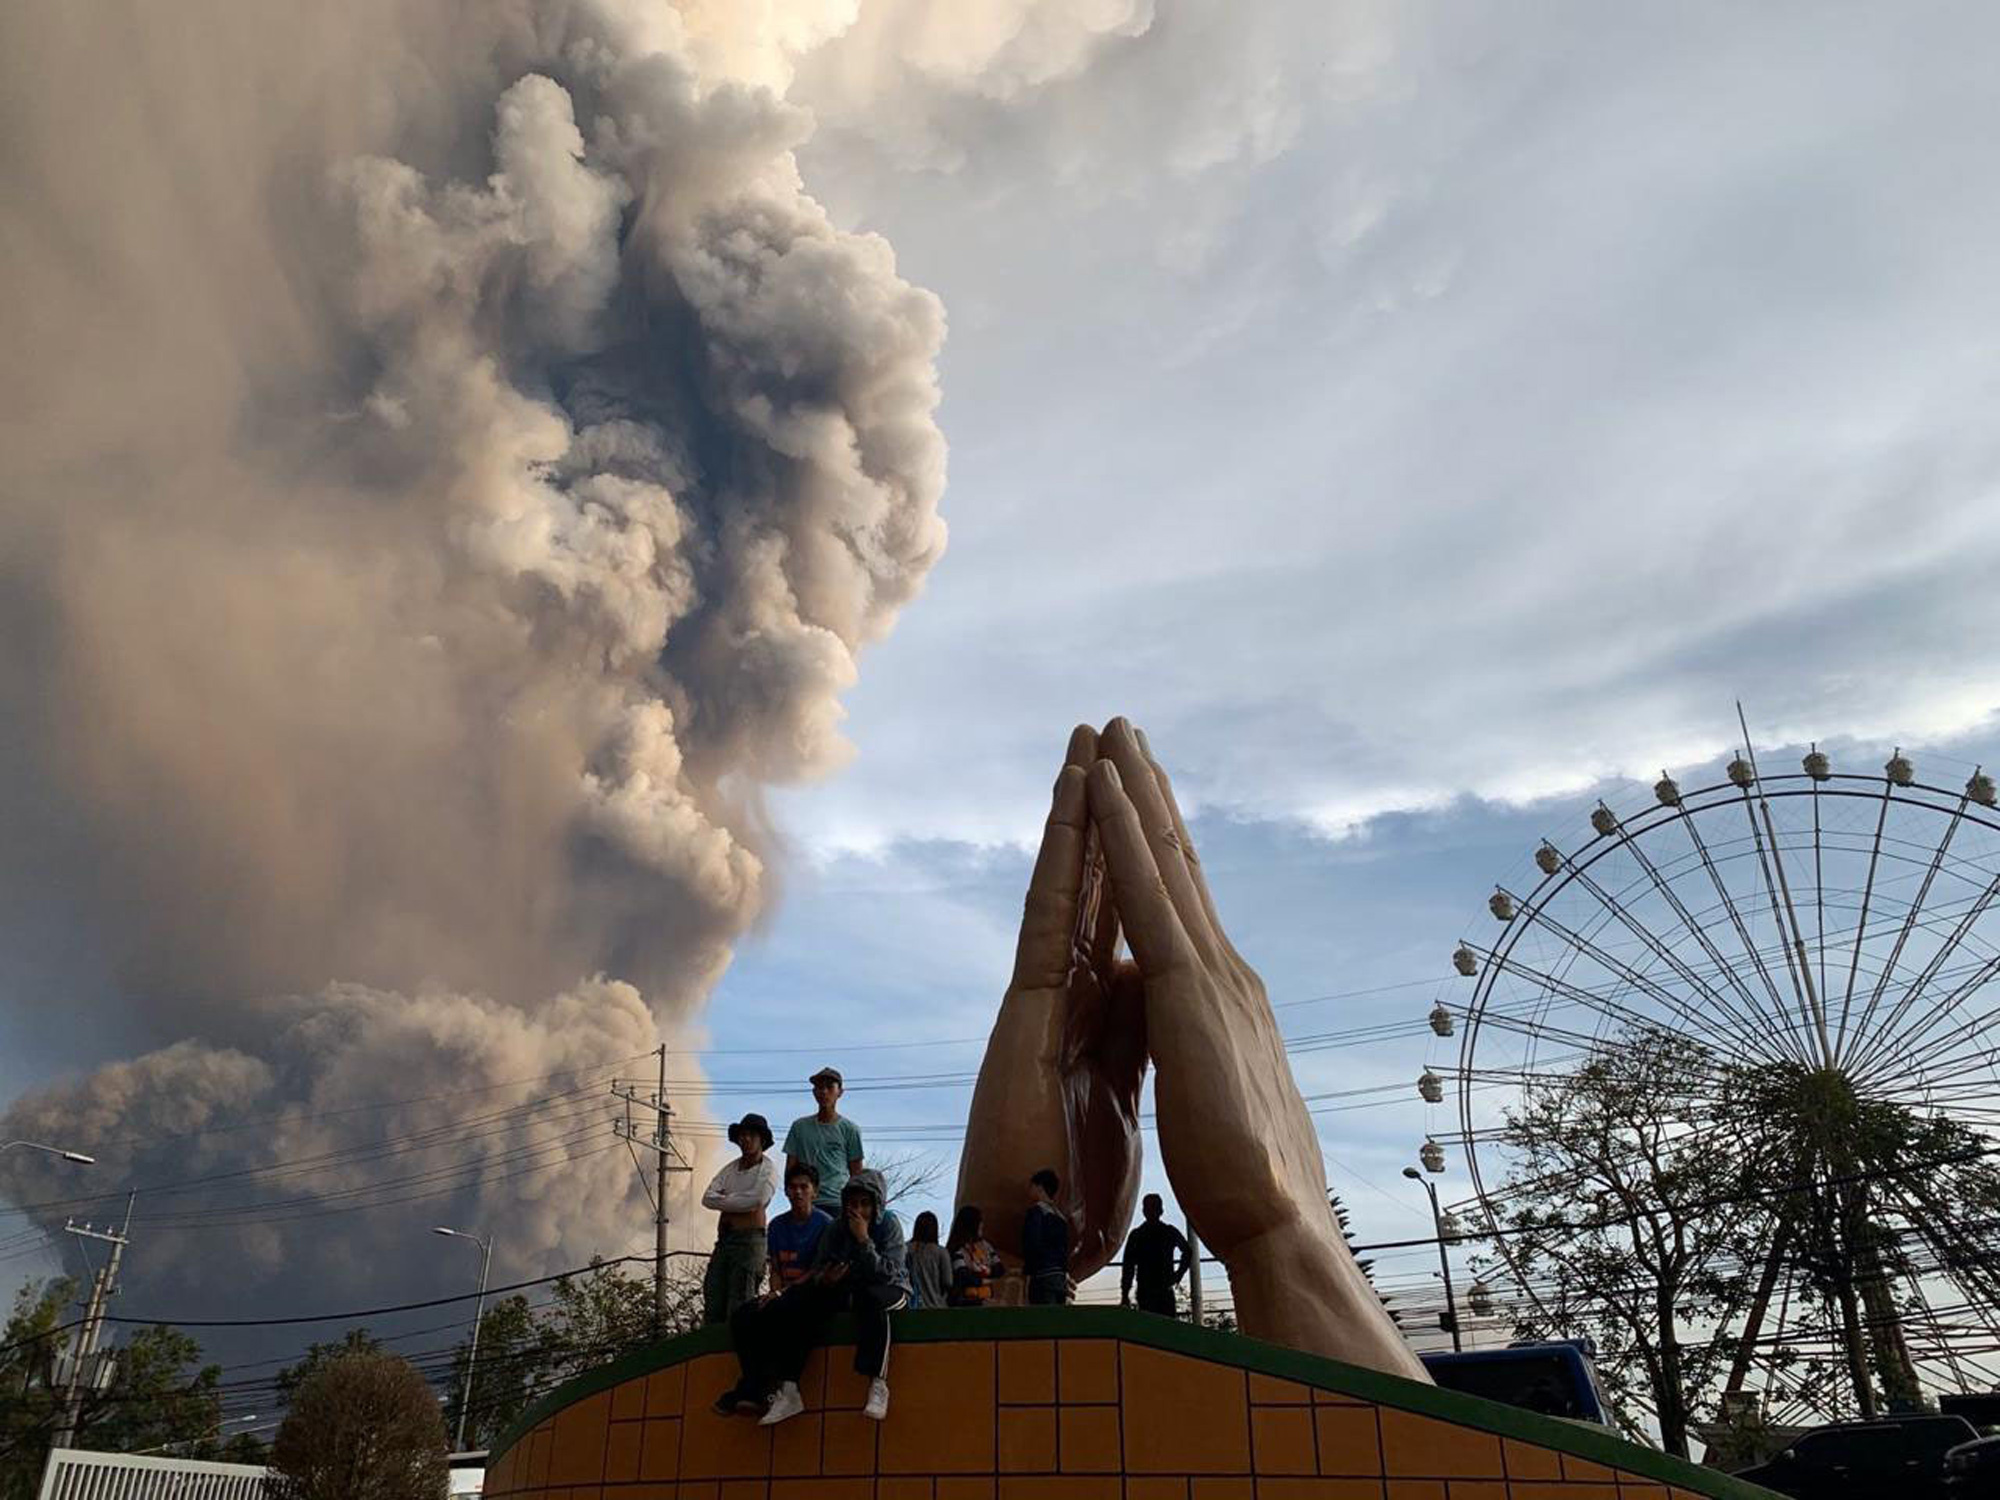 People watch as the Taal volcano spews ash and smoke during an eruption in Tagaytay, Cavite province south of Manila, Philippines on Jan. 12, 2020.